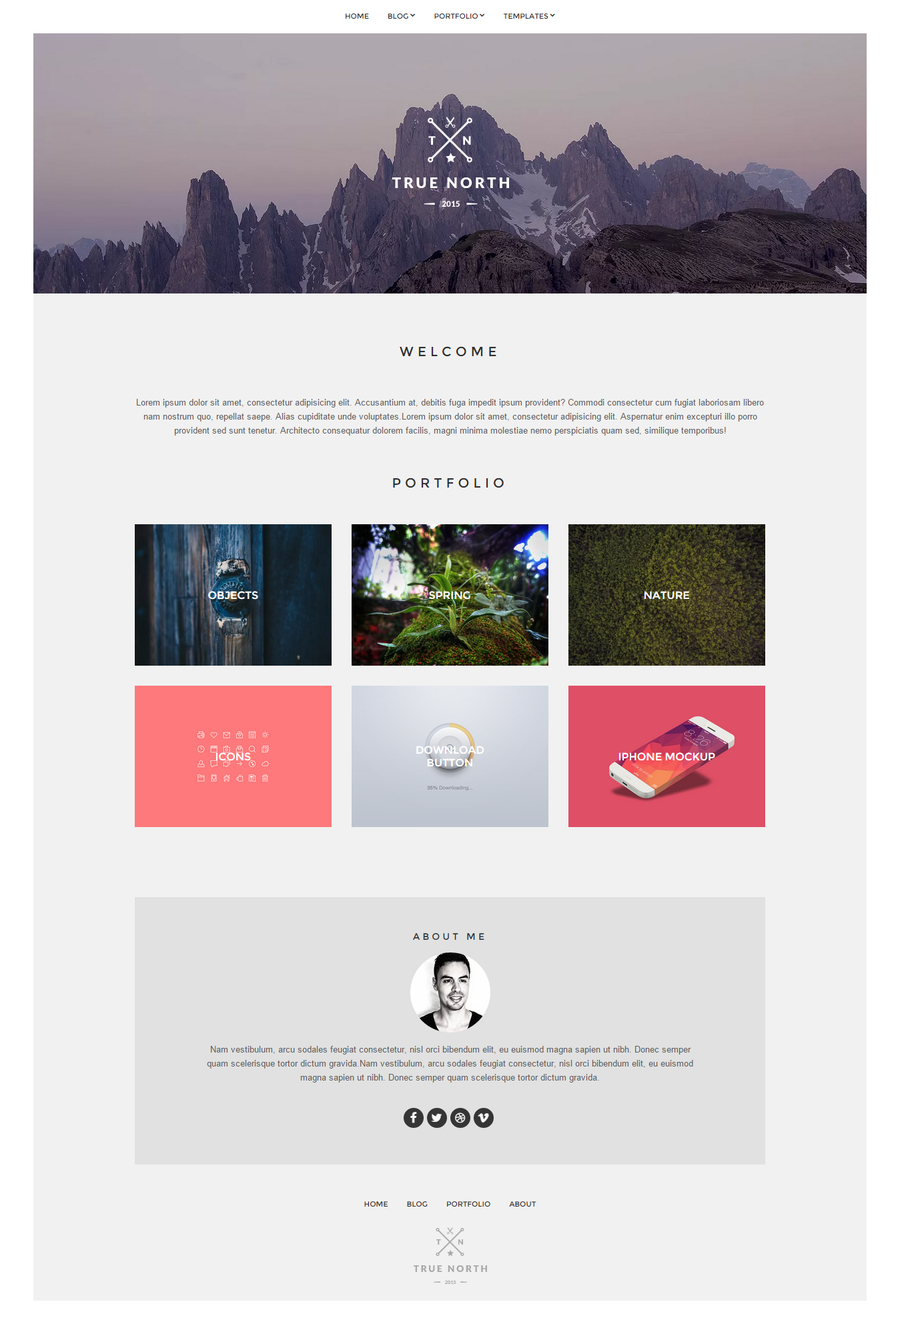 true-north-free-portfolio-wordpress-theme